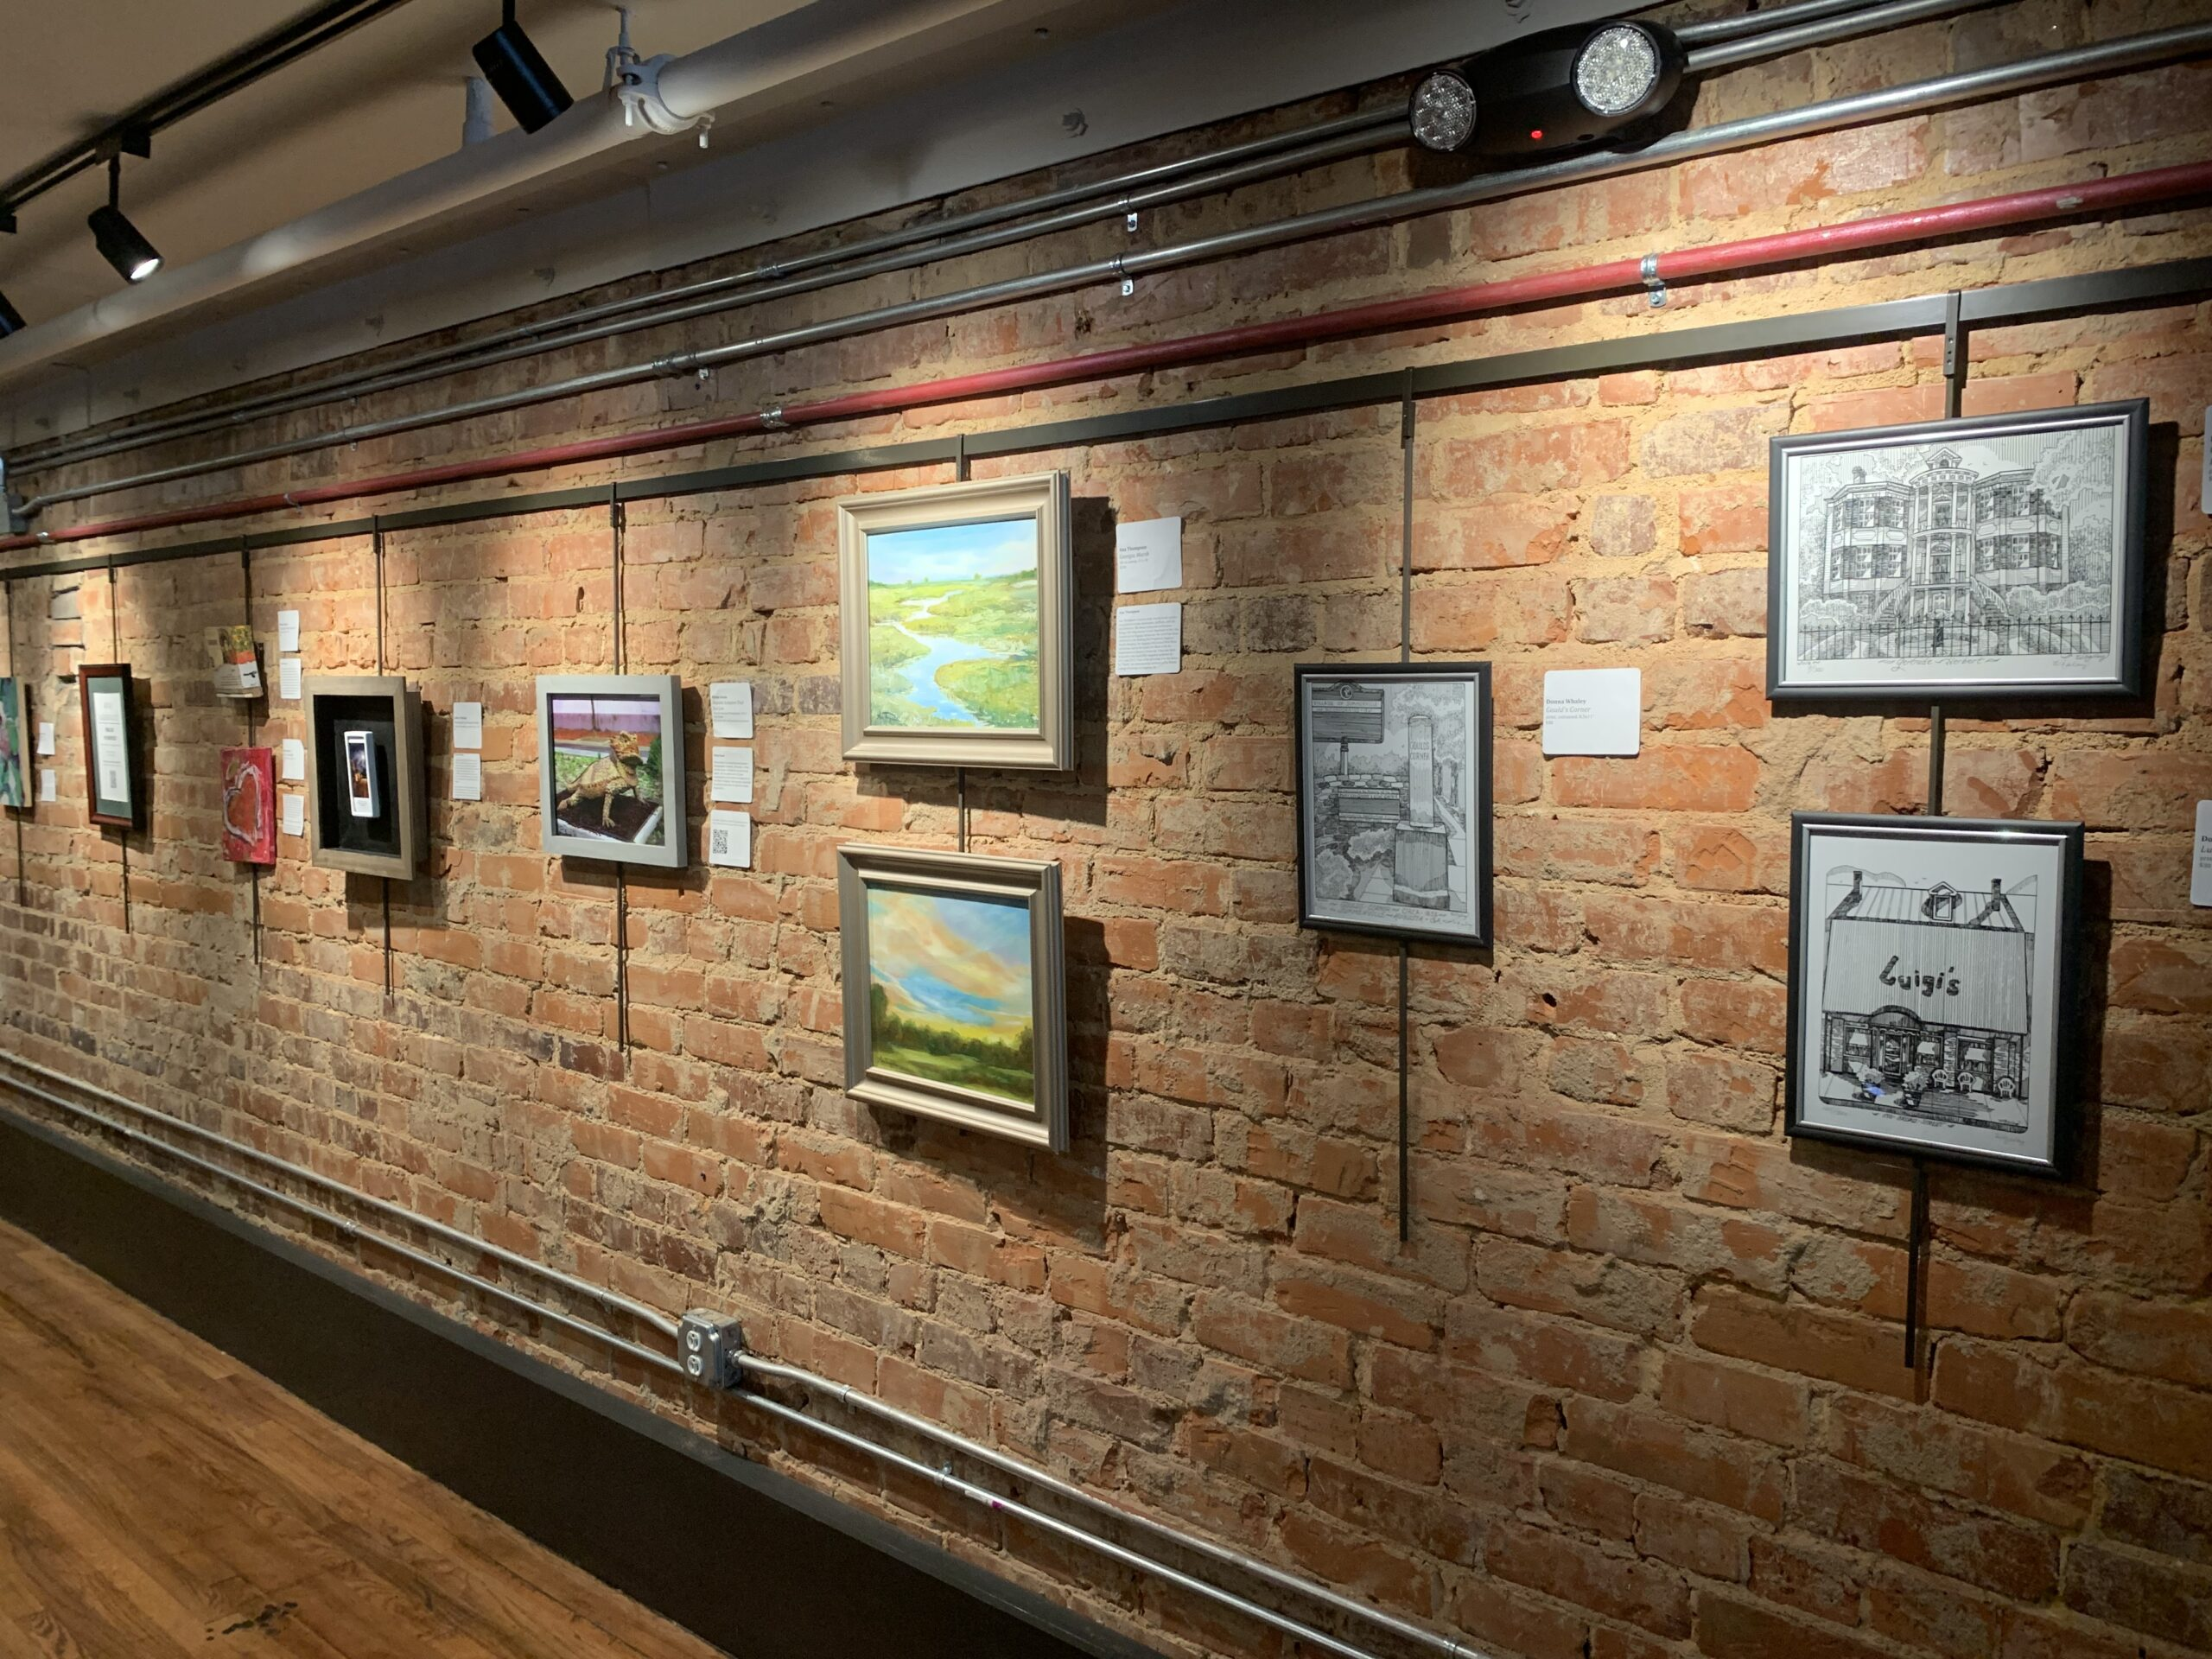 wall of submissions for public art exhibit